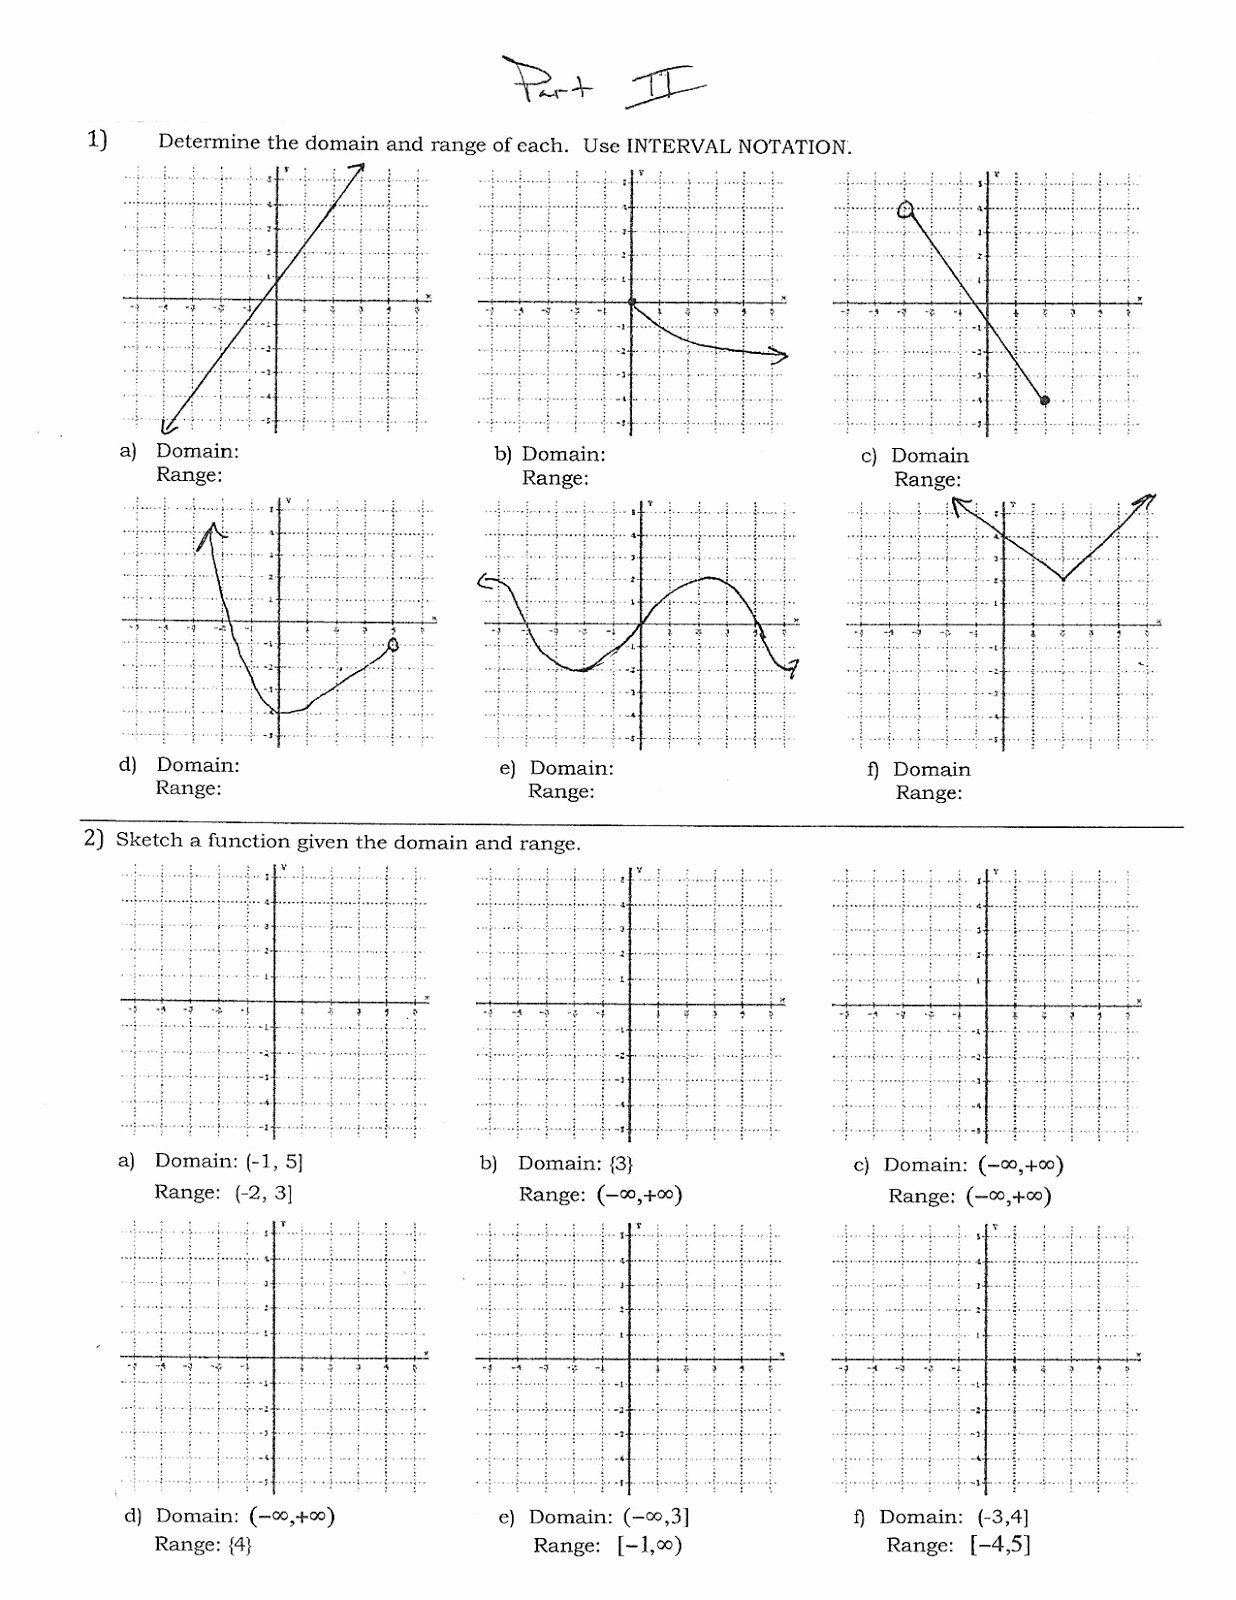 Domain and Range Worksheet Best Of Domain and Range Matching Activity Worksheet Answers